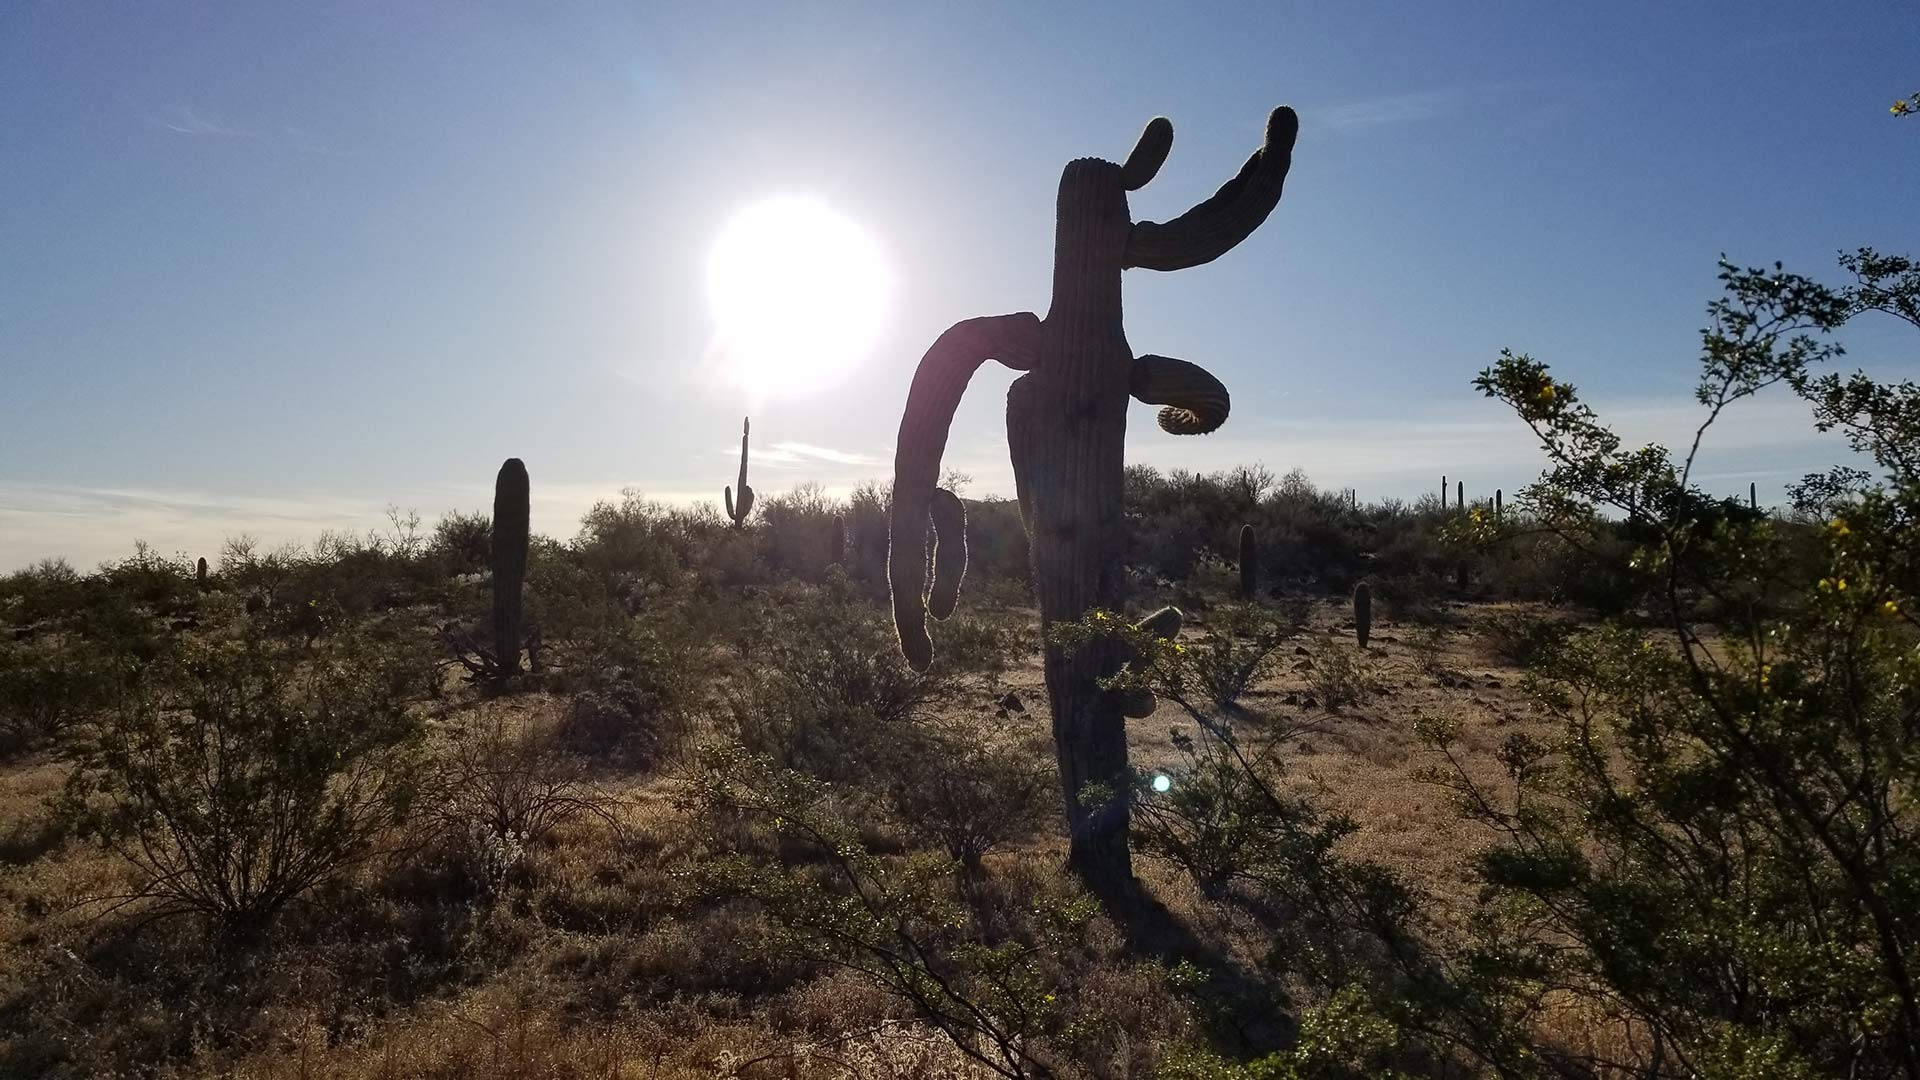 The sun shines harshly behind a saguaro cactus.